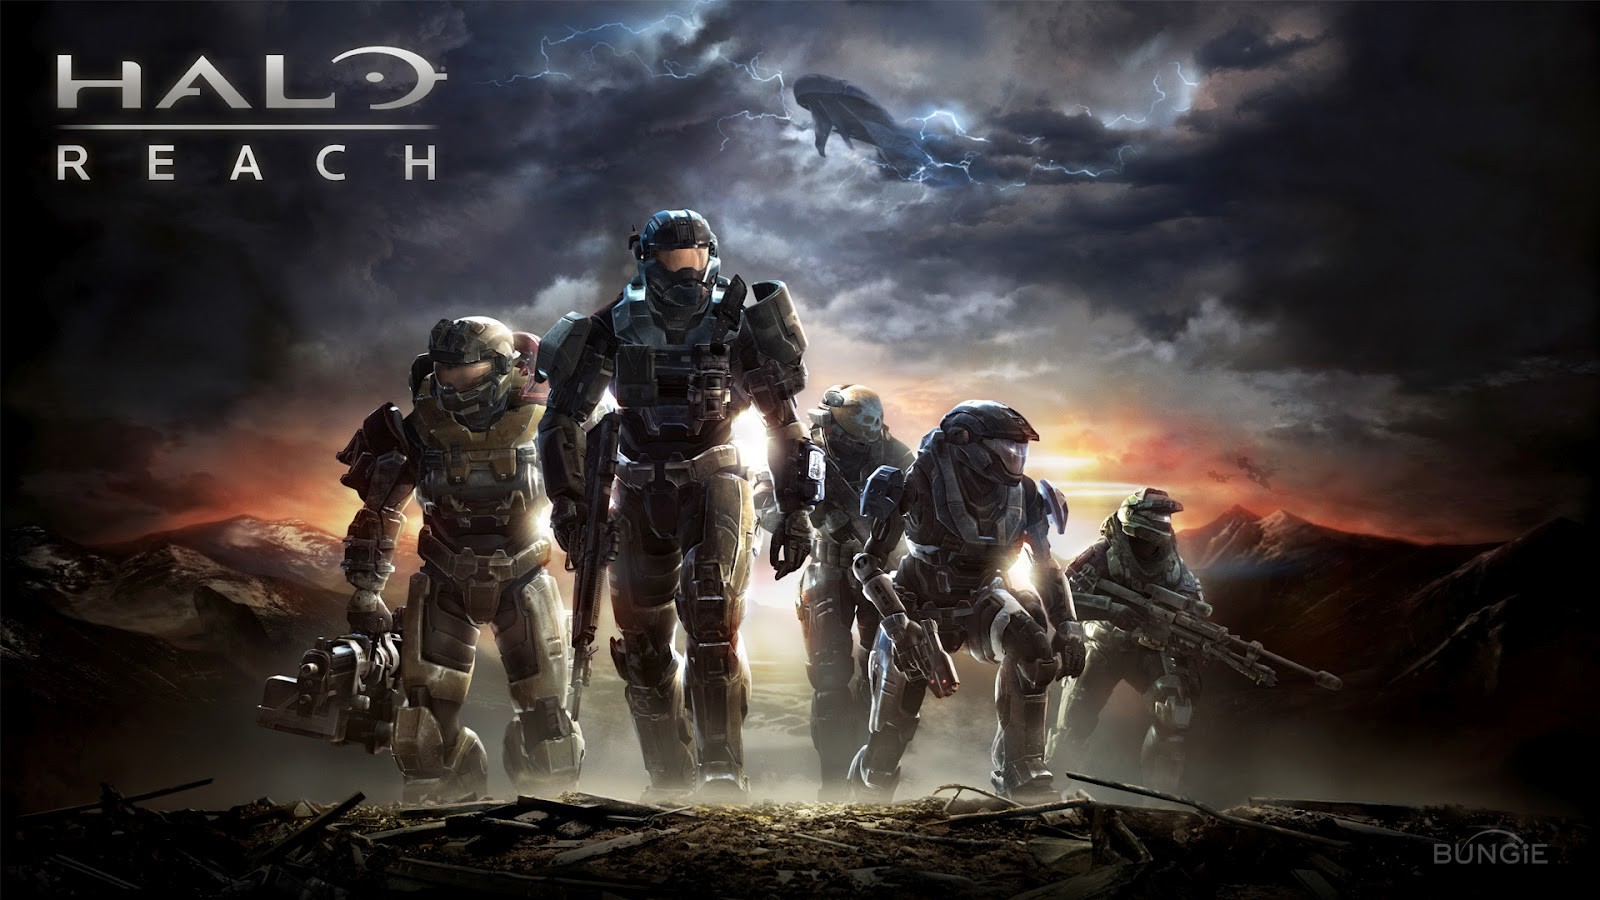 http://2.bp.blogspot.com/-Qap3A0IWvQQ/UAU4fC0t2UI/AAAAAAAABW0/gCRUbAI9pQk/s1600/halo+reach+wallpaper+background+bungie+xbox+microsoft+fps+first+person+shooter.jpg